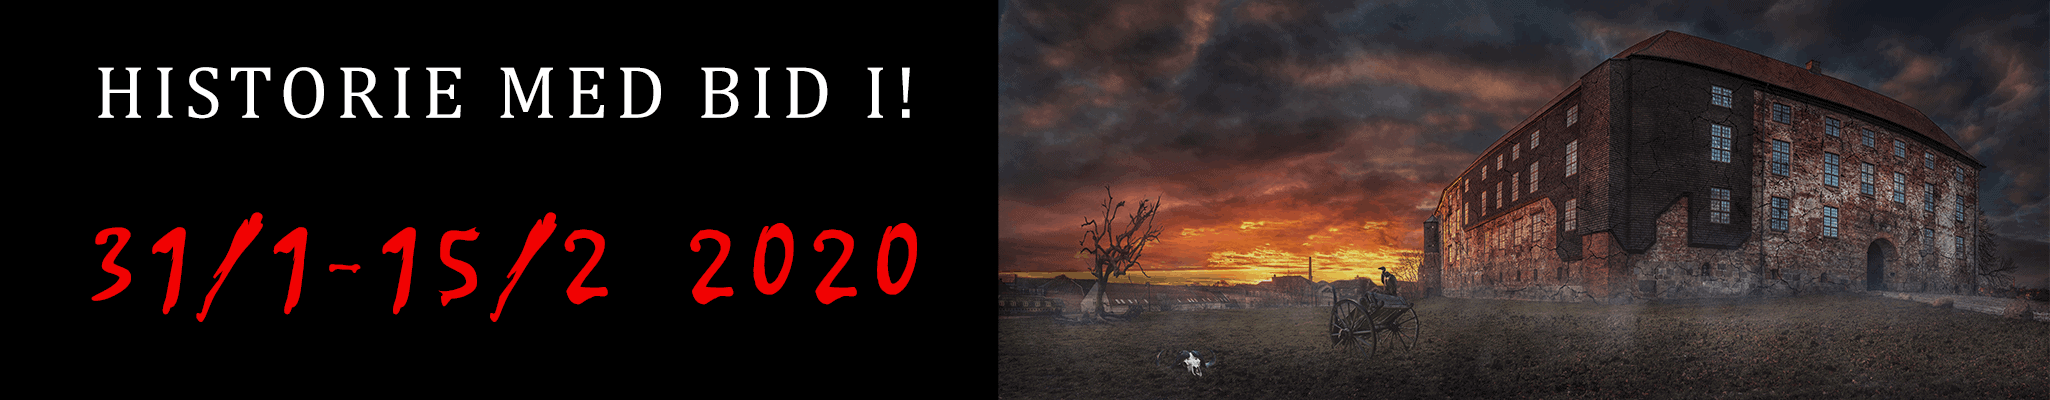 Haunted Castle 2020 Blodets Forbandelse Koldinghus